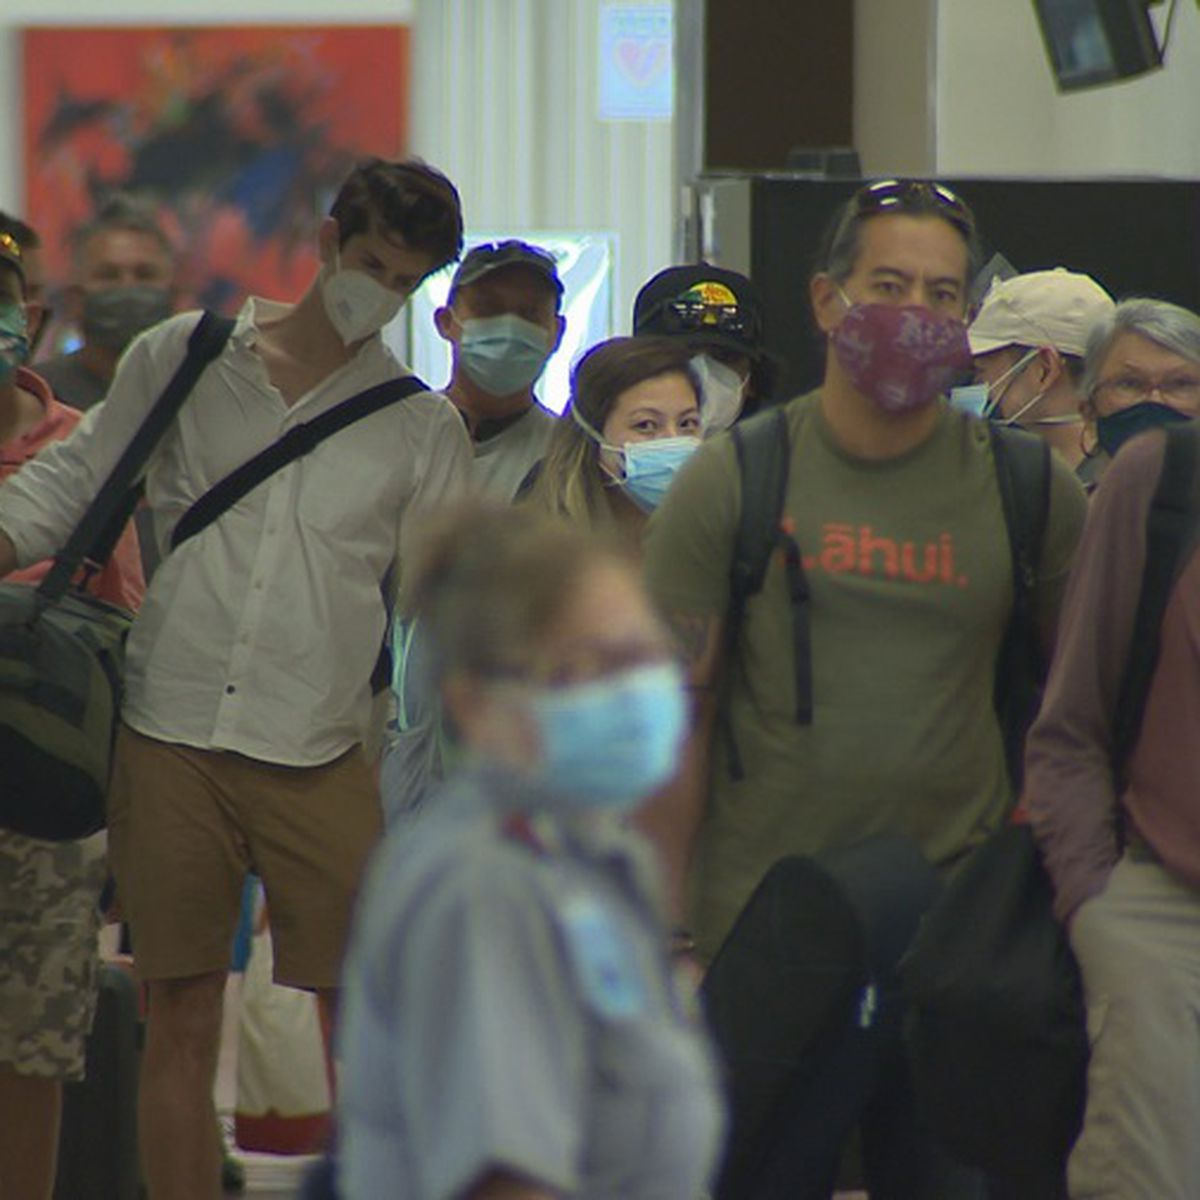 Hawaii has seen more than 30,000 arrivals since launch of traveler testing program